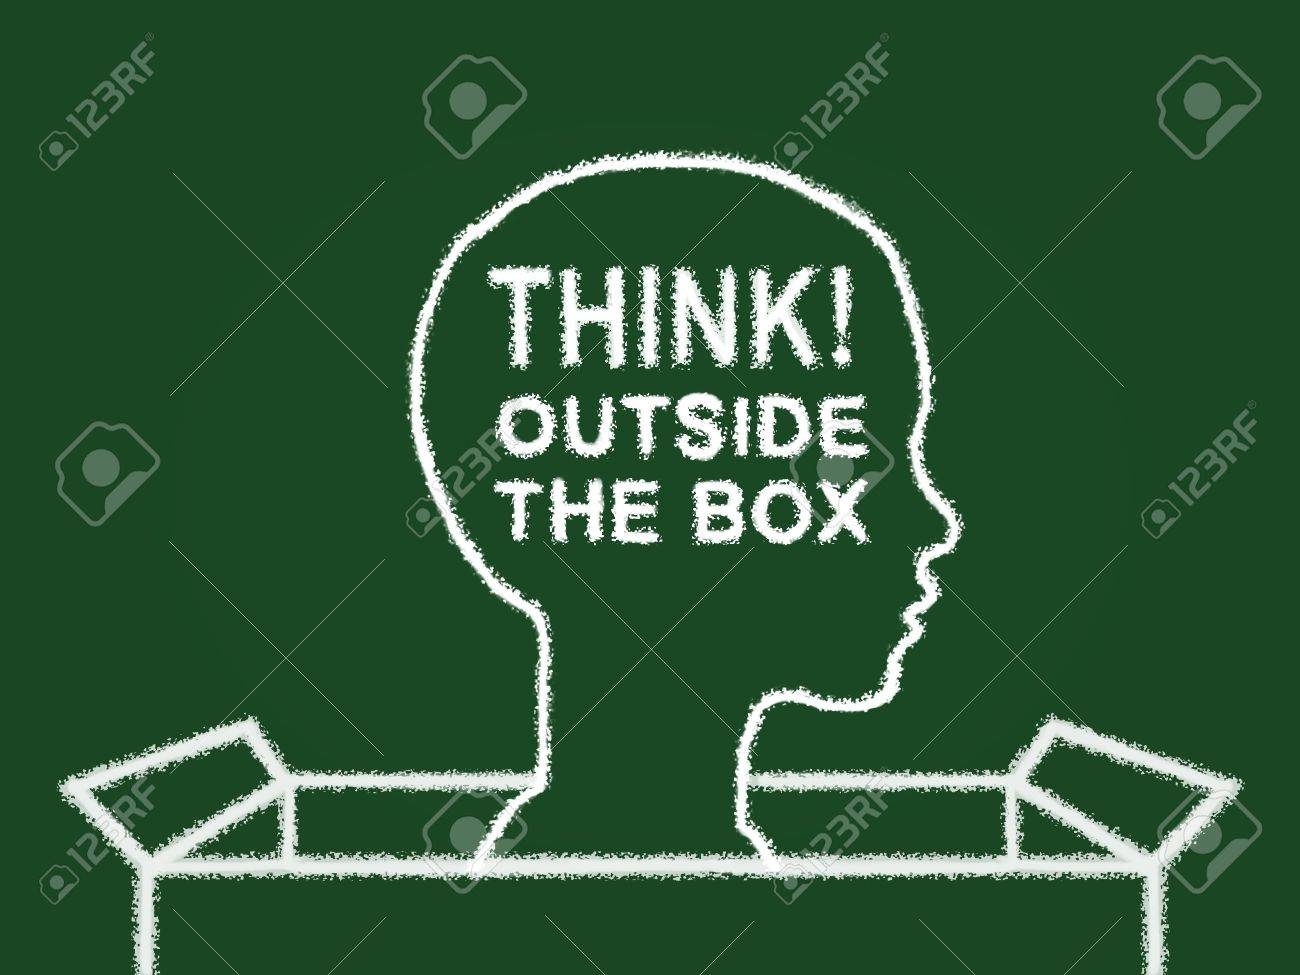 Illustration of a green board with chalk like drawing of a person with head outside of a box and text Stock Photo - 12755730